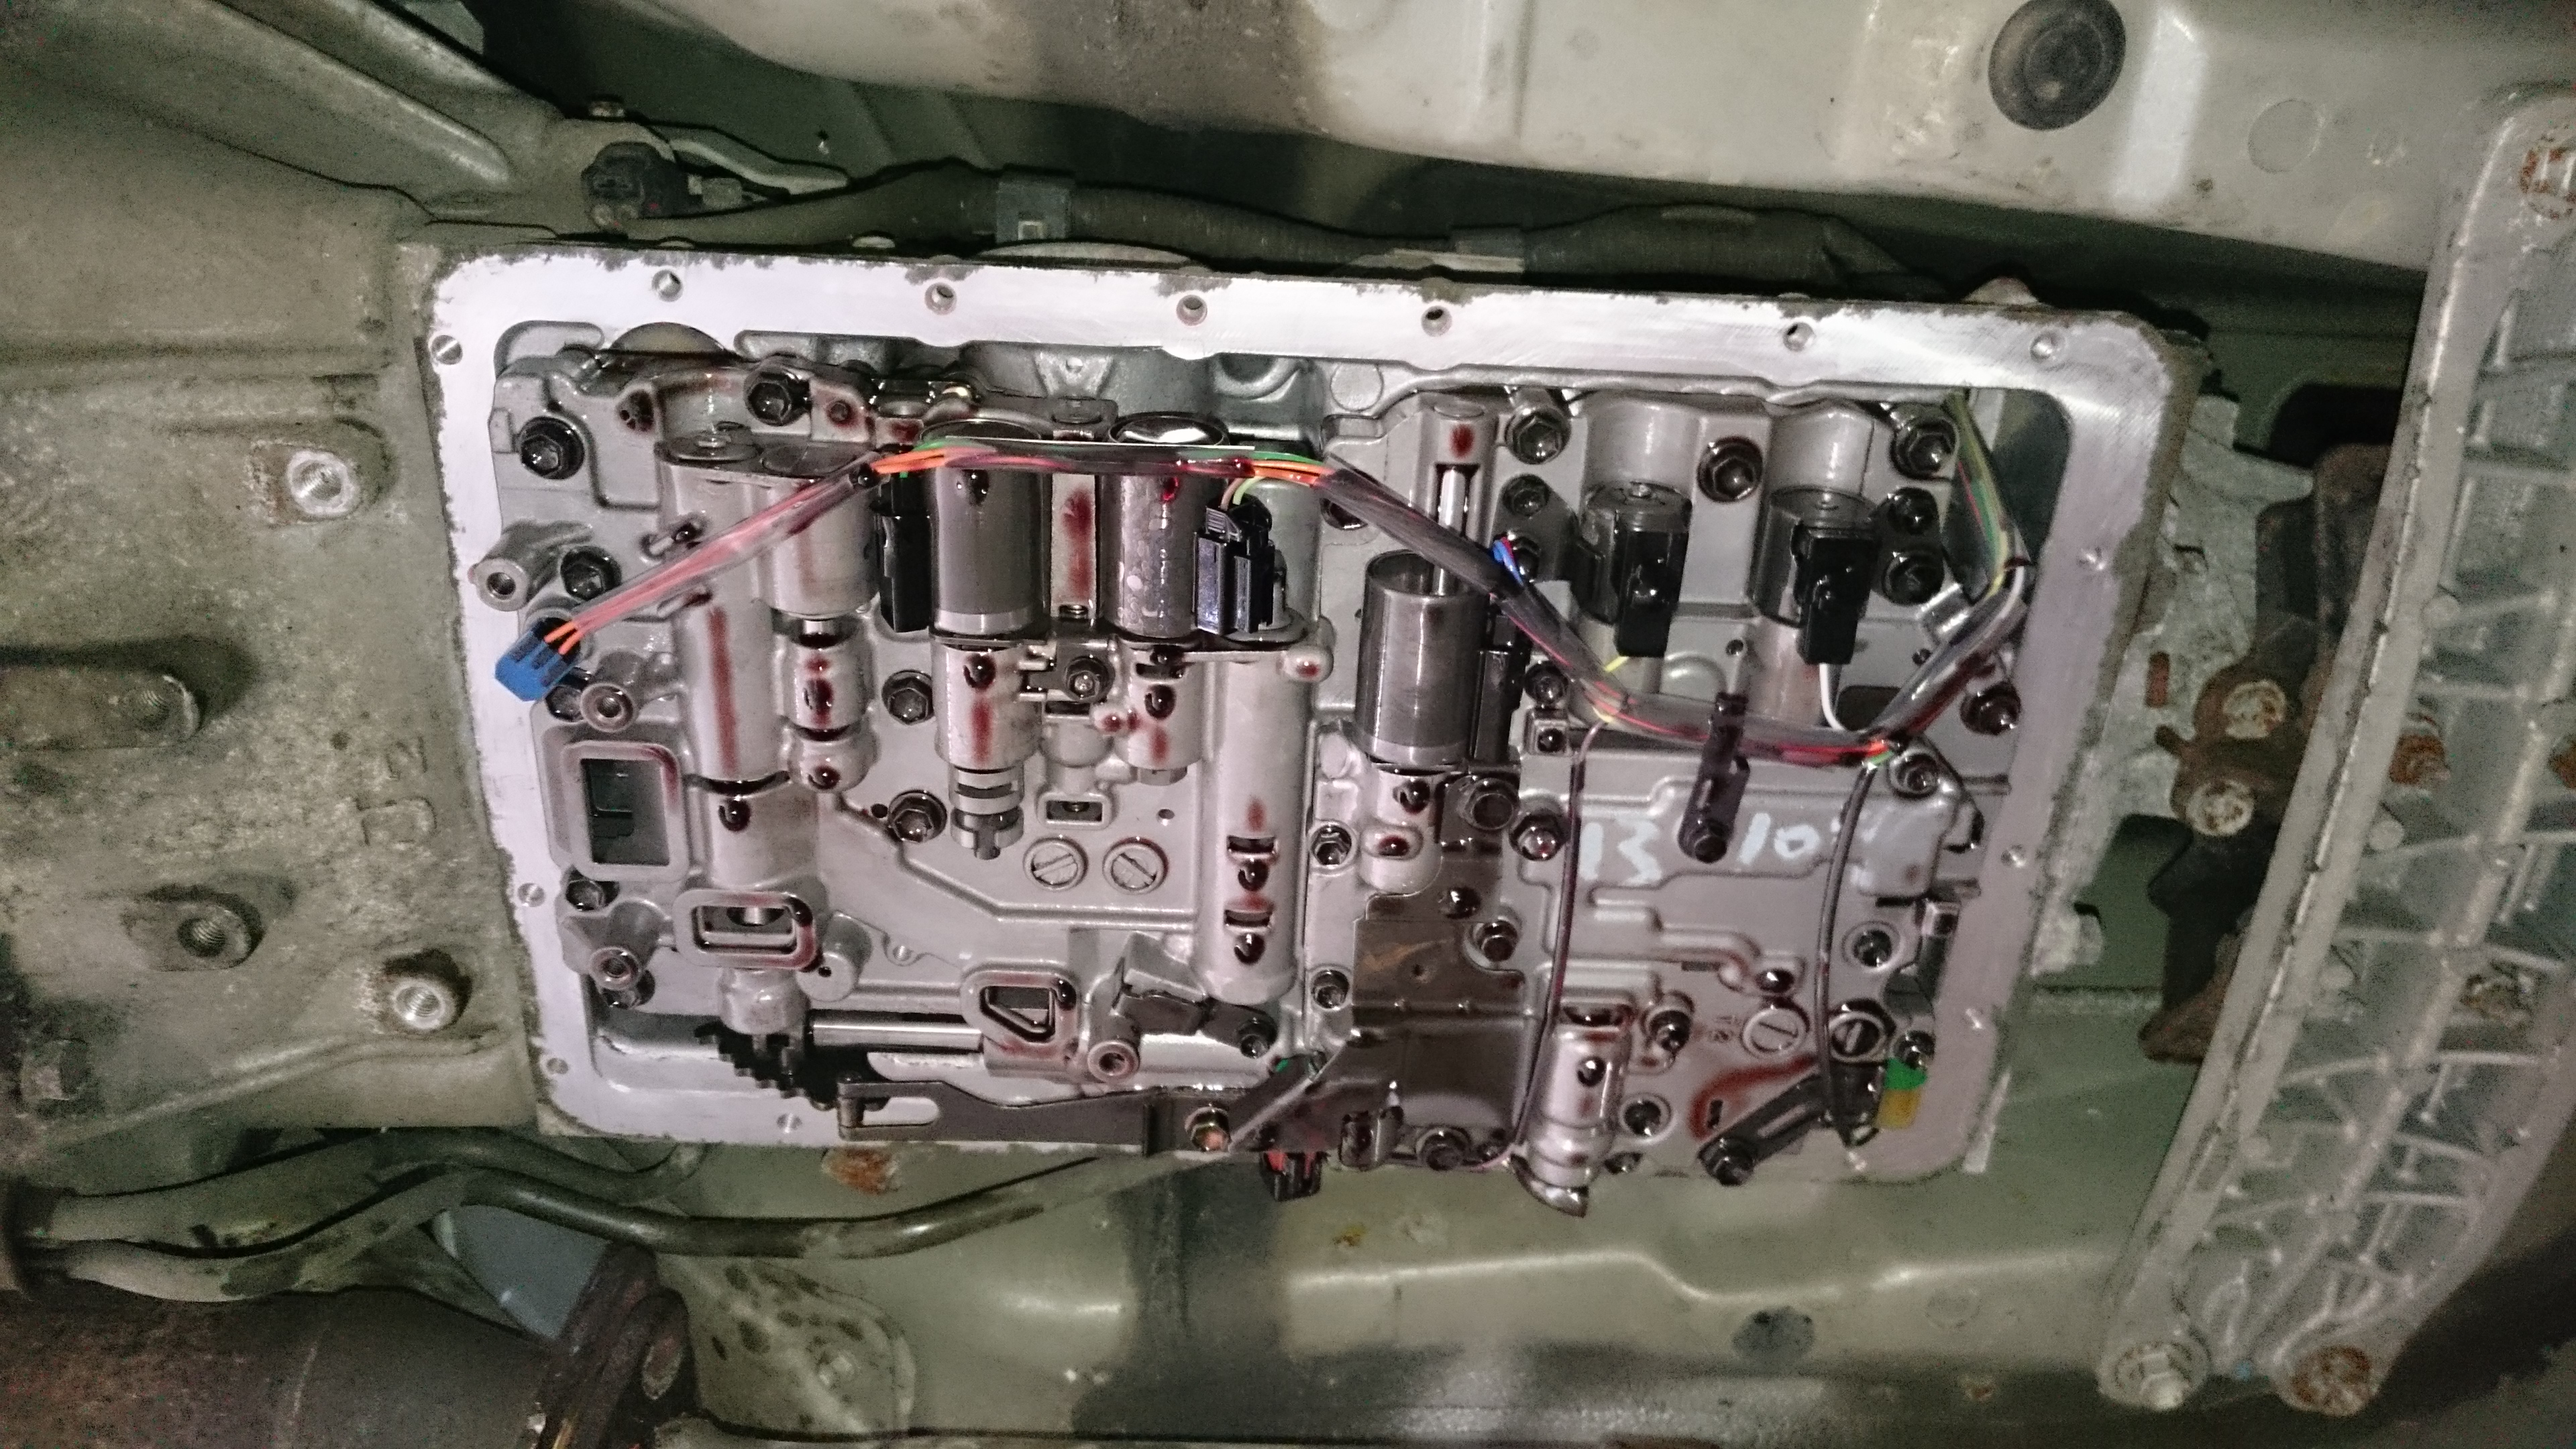 Is300 Auto Gearbox A650E Oil Change Info Needed - Engine